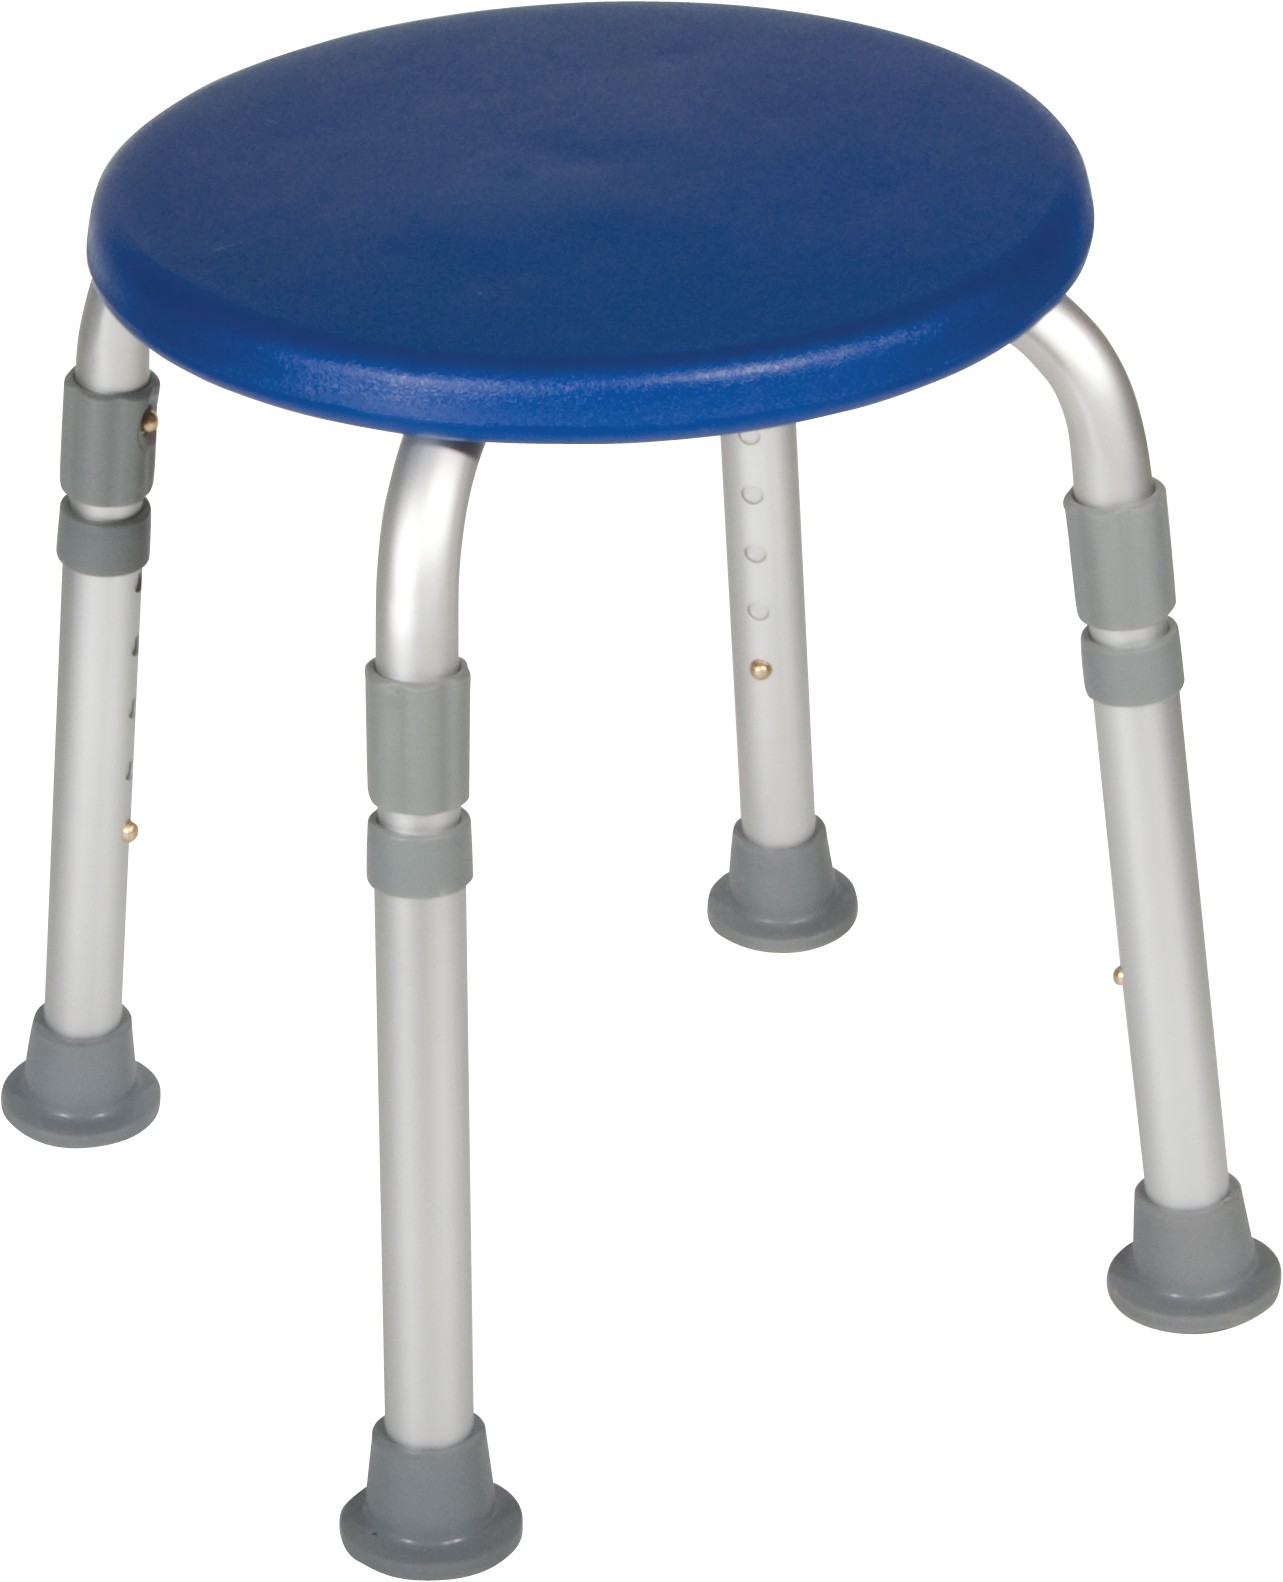 adjustable_height_bath_stool2.jpg